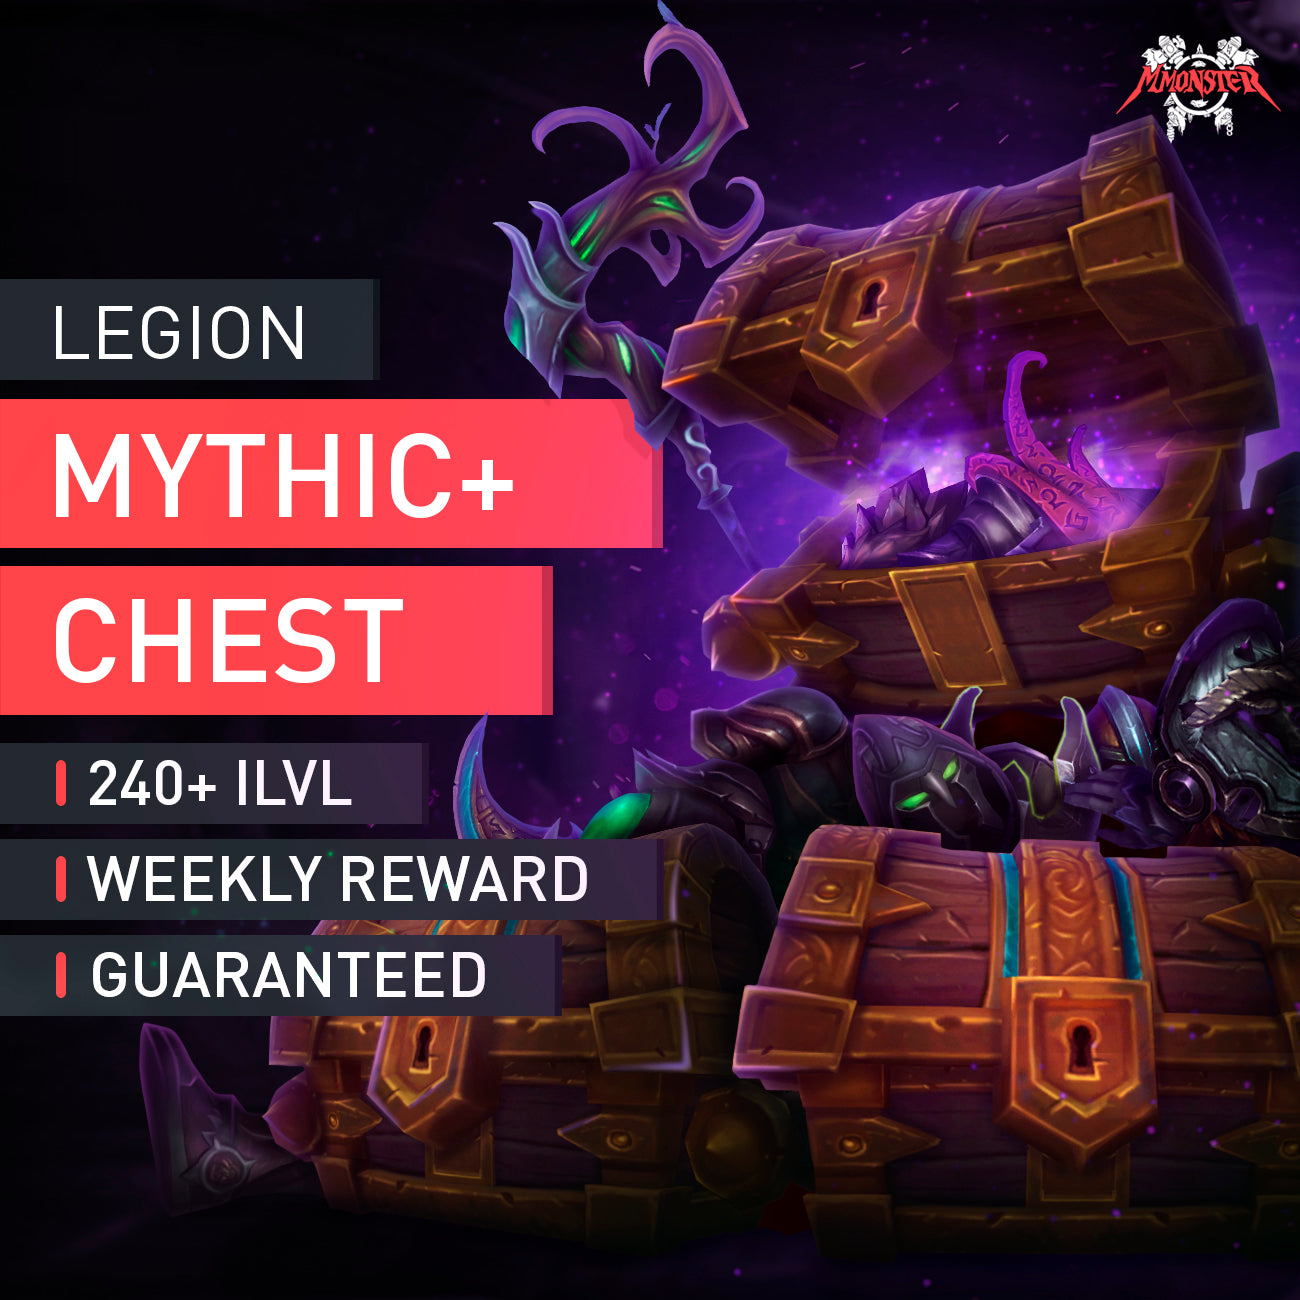 Legion Mythic+ 15 Weekly Chest - MMonster